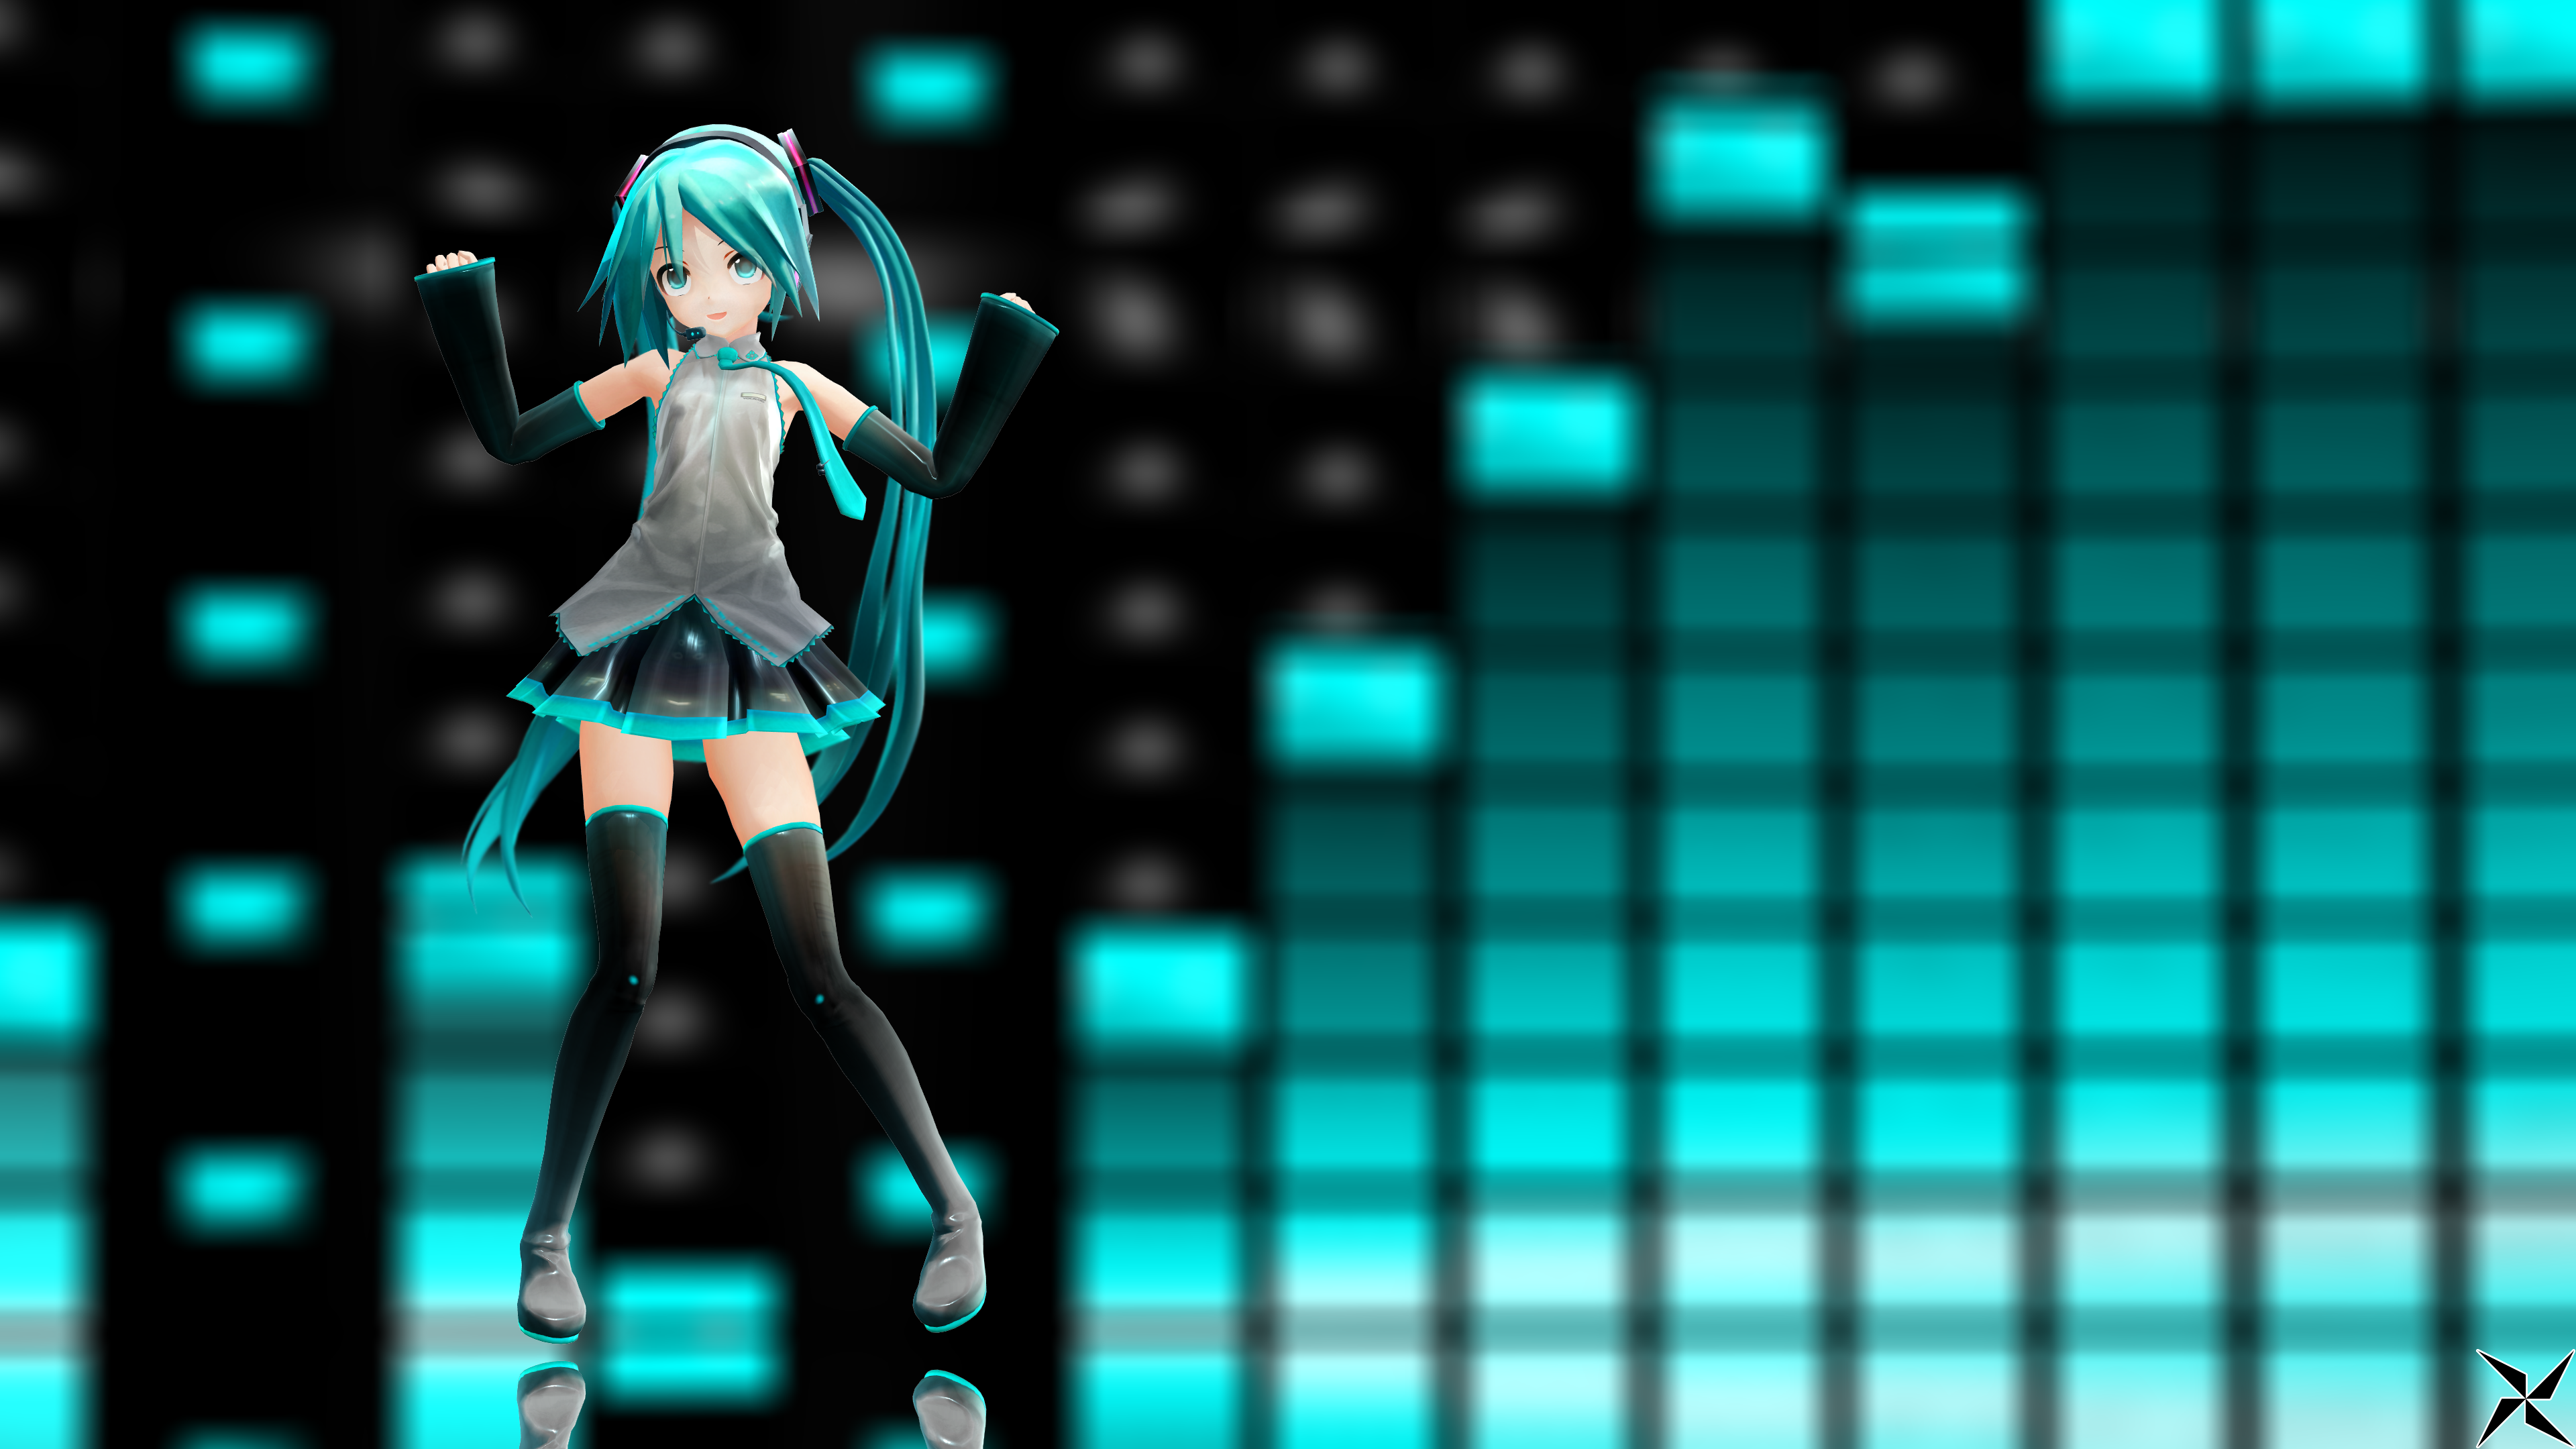 mmd wallpaper 1 - photo #31